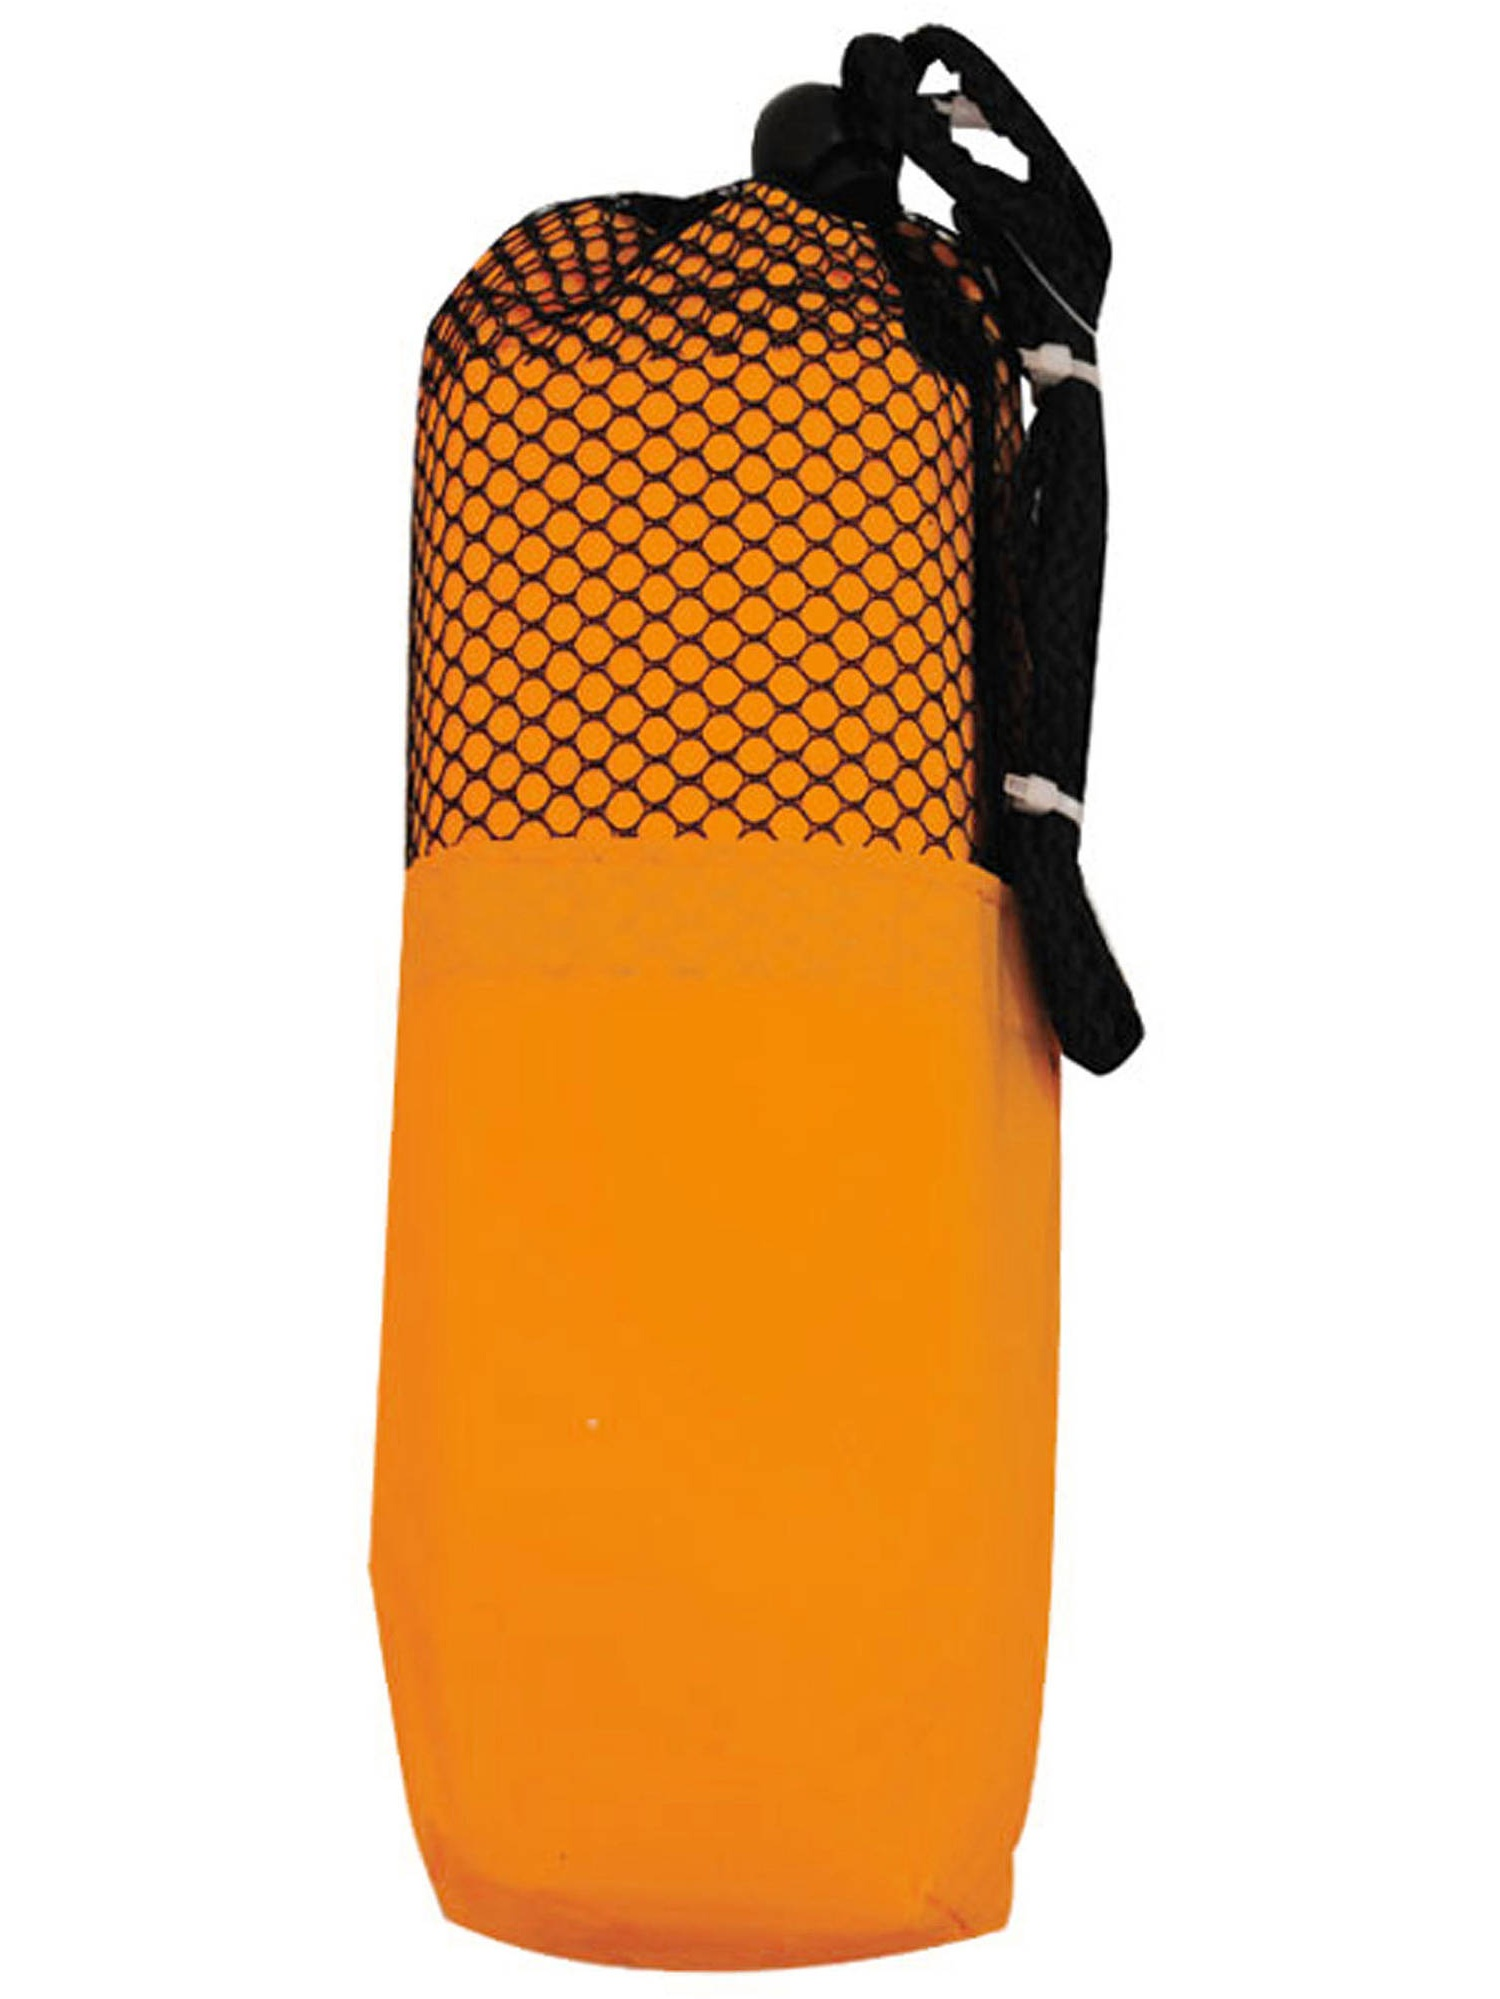 Adult PVC poncho in color matching carry case